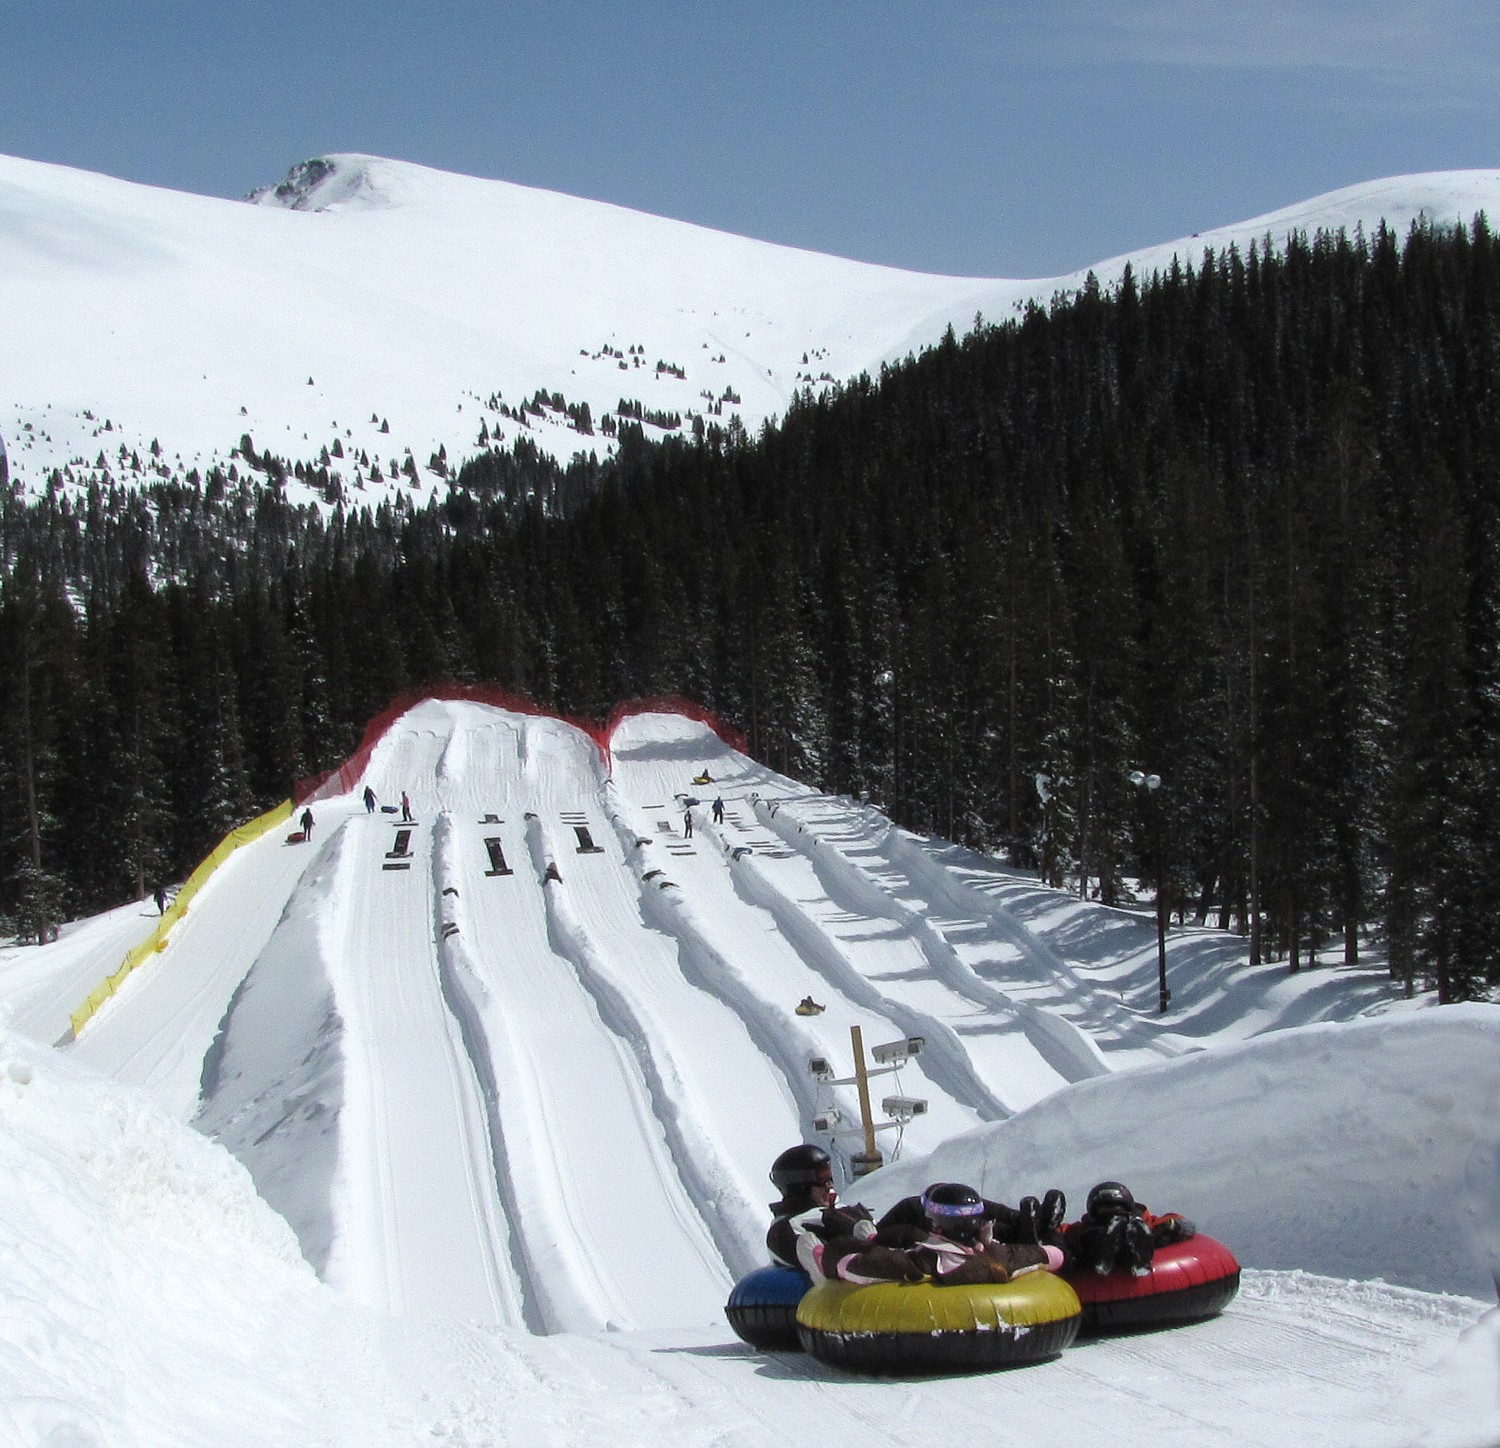 Tubing at the adventure center at family friendly keystone resort in the colorado rockies snow